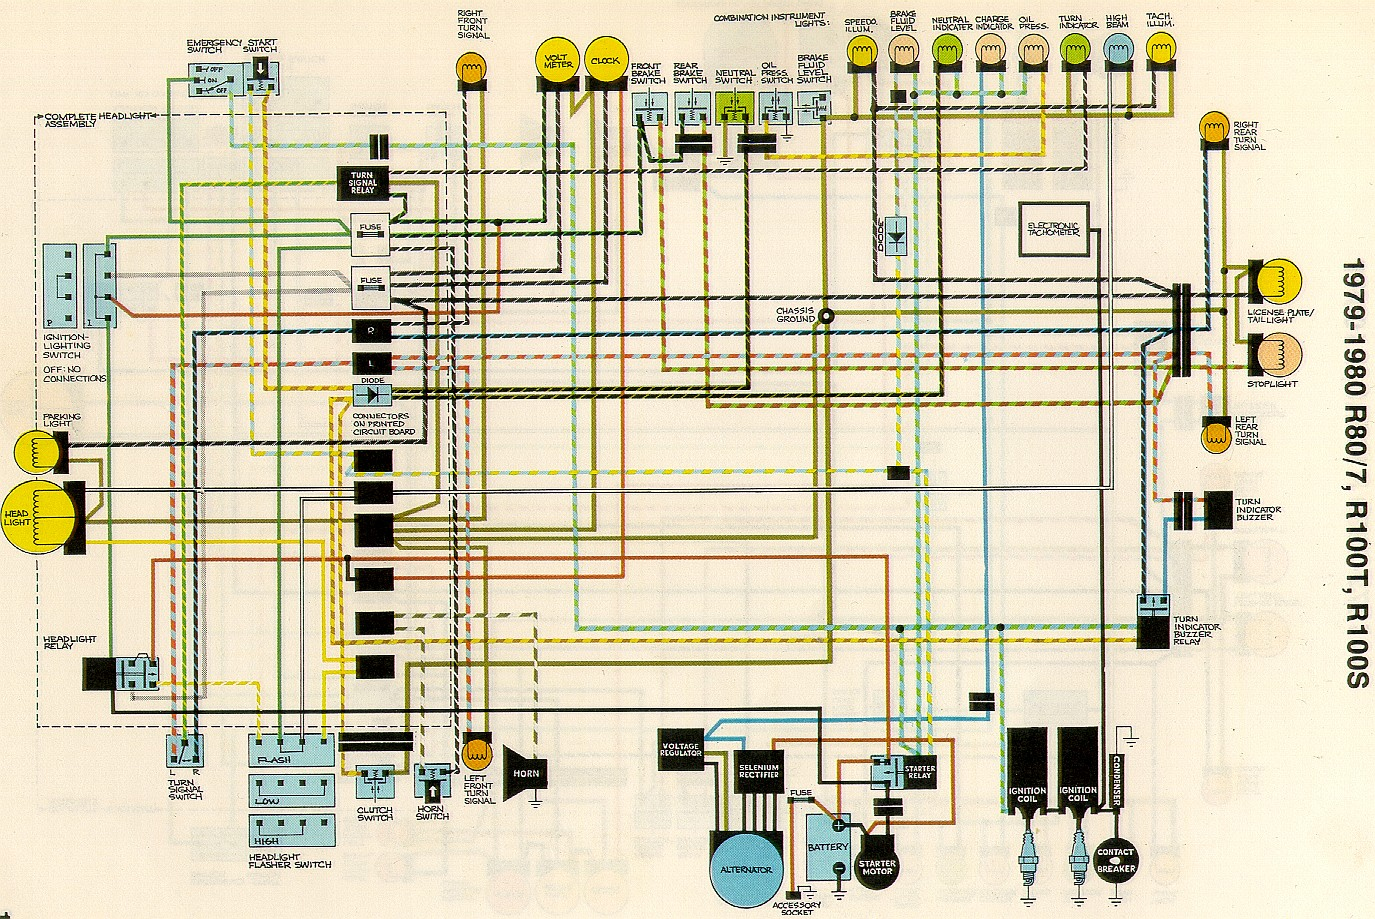 79 5 united articles wiring diagrams bmw r100rs gauge wiring diagram at cita.asia